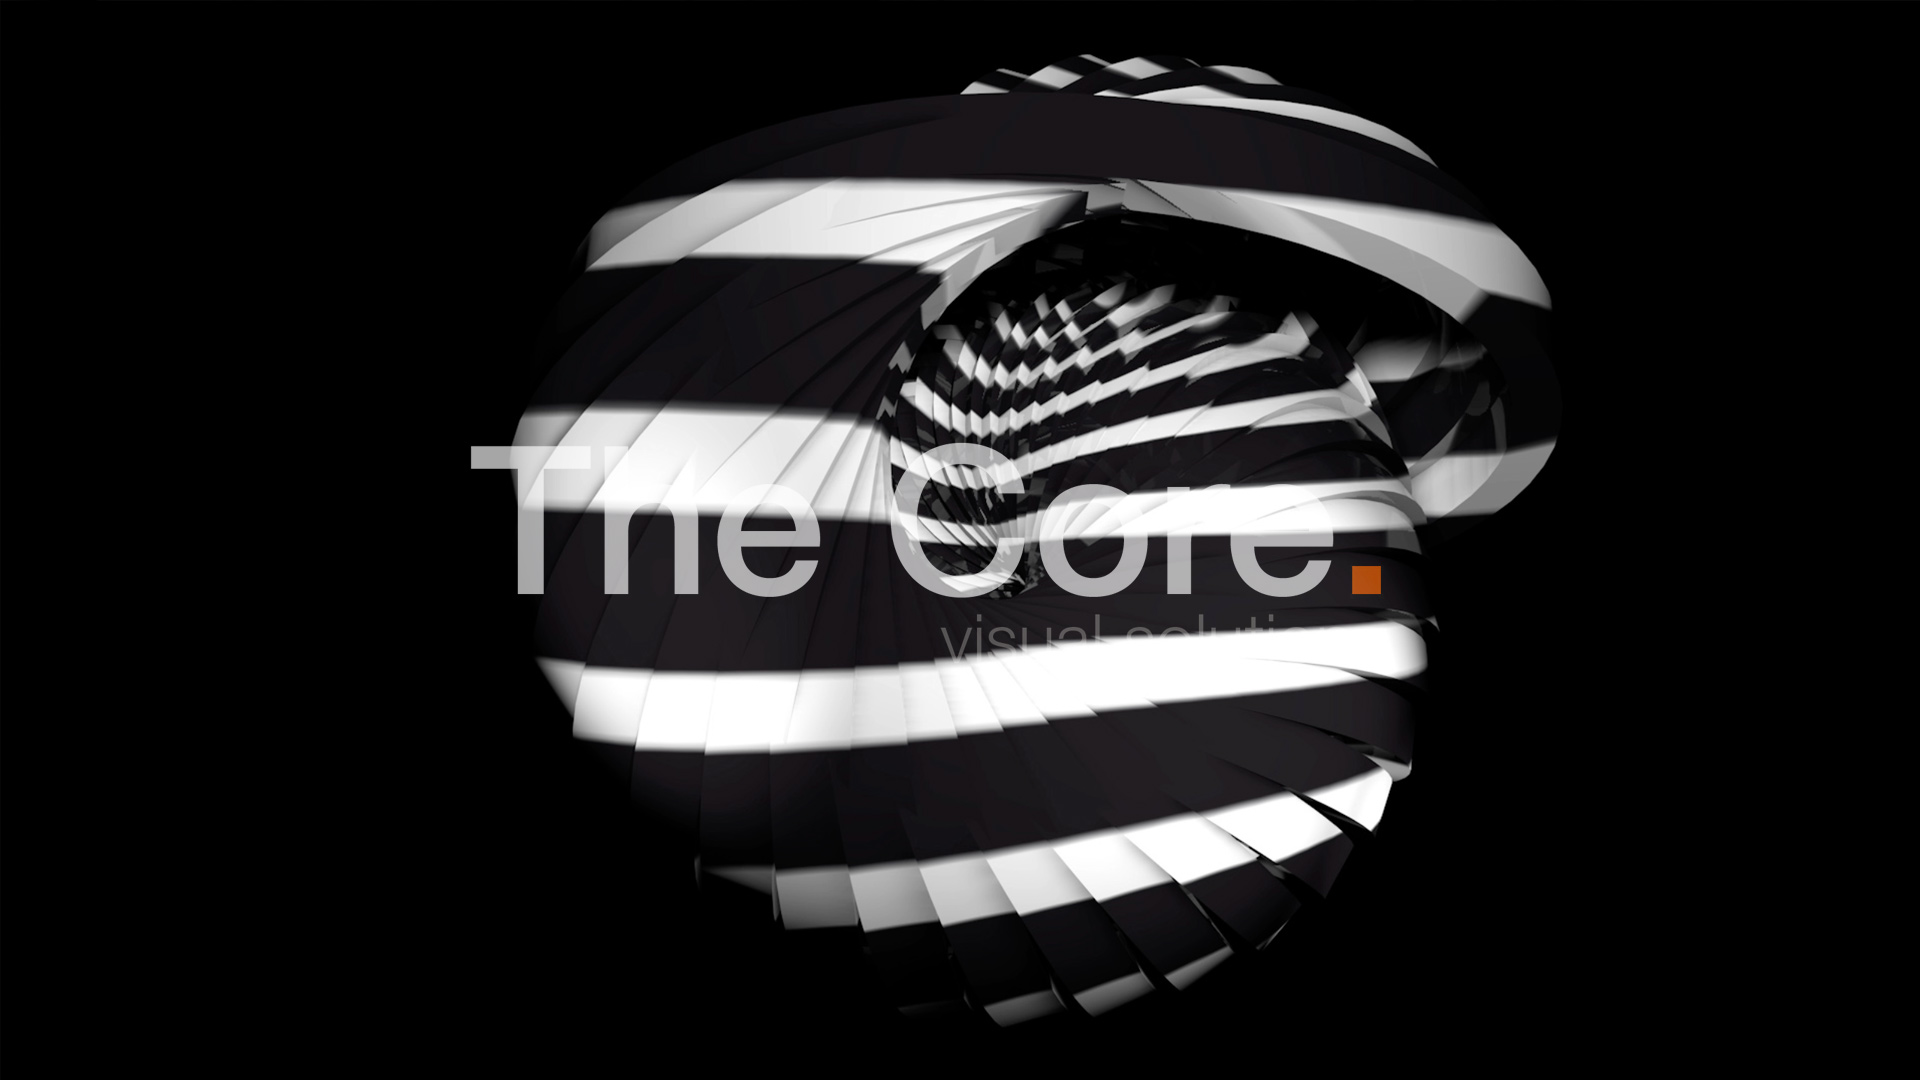 00115-ROTORSHELL-STRIPED-1-STILL-by-The-Core